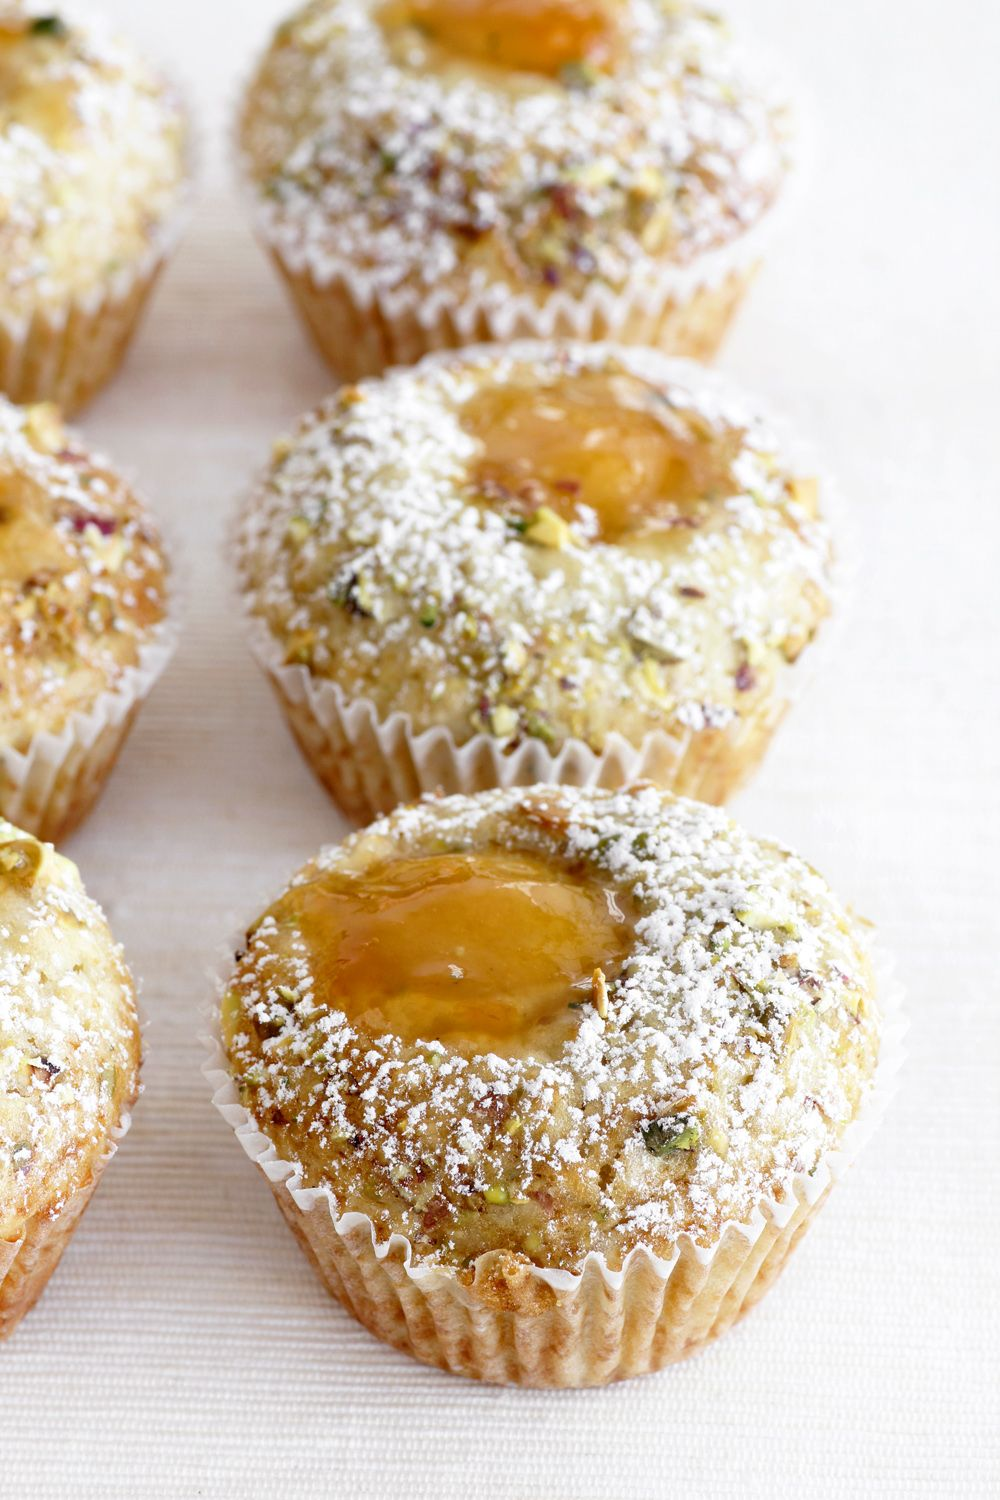 Apricot Muffins with Pistachio and Oats